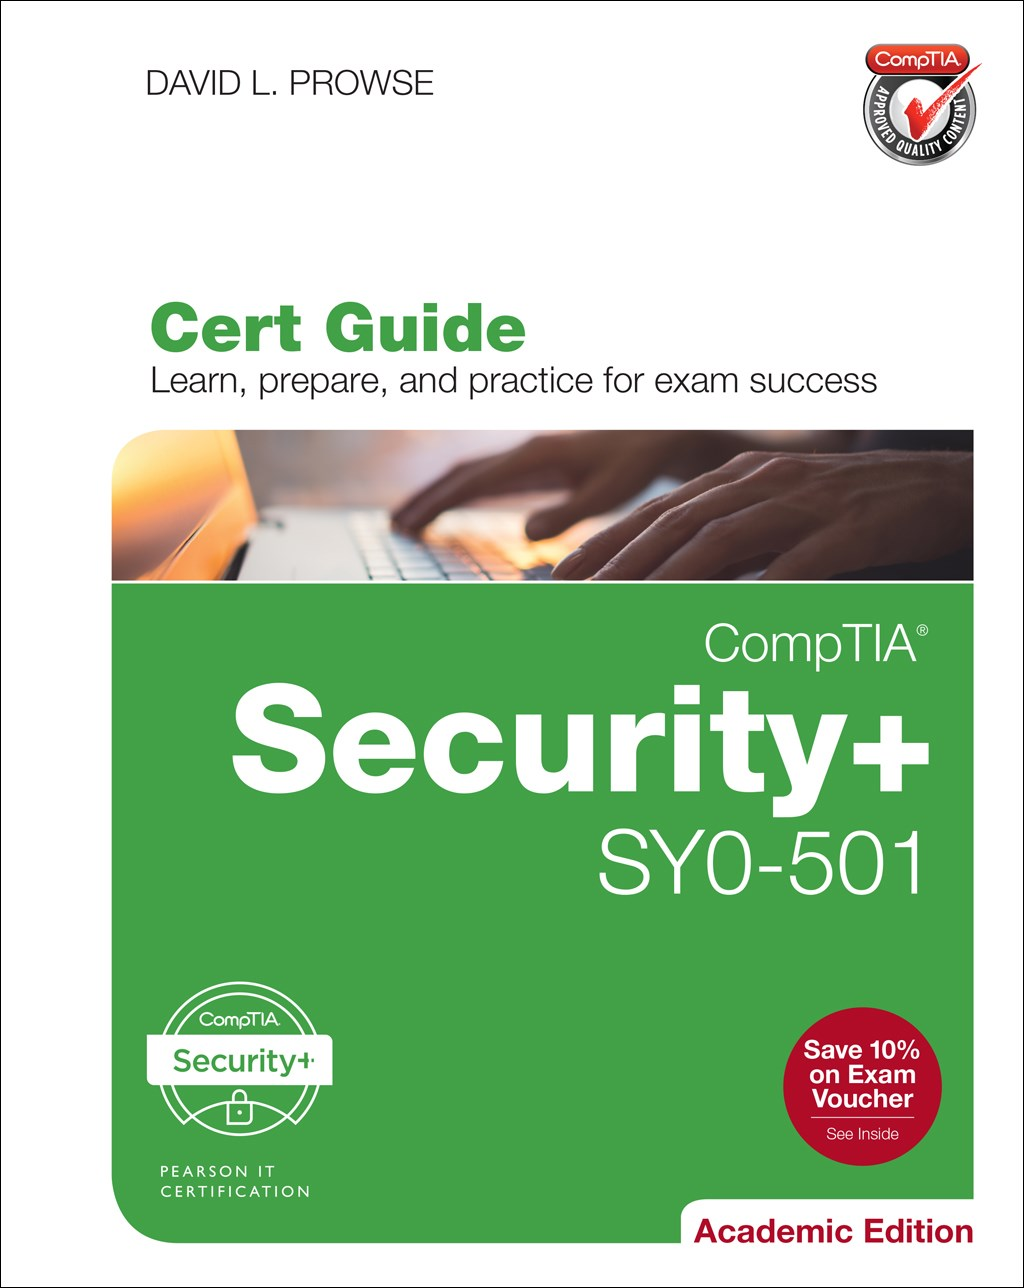 CompTIA Security+ SY0-501 Cert Guide, Academic Edition, 2nd Edition